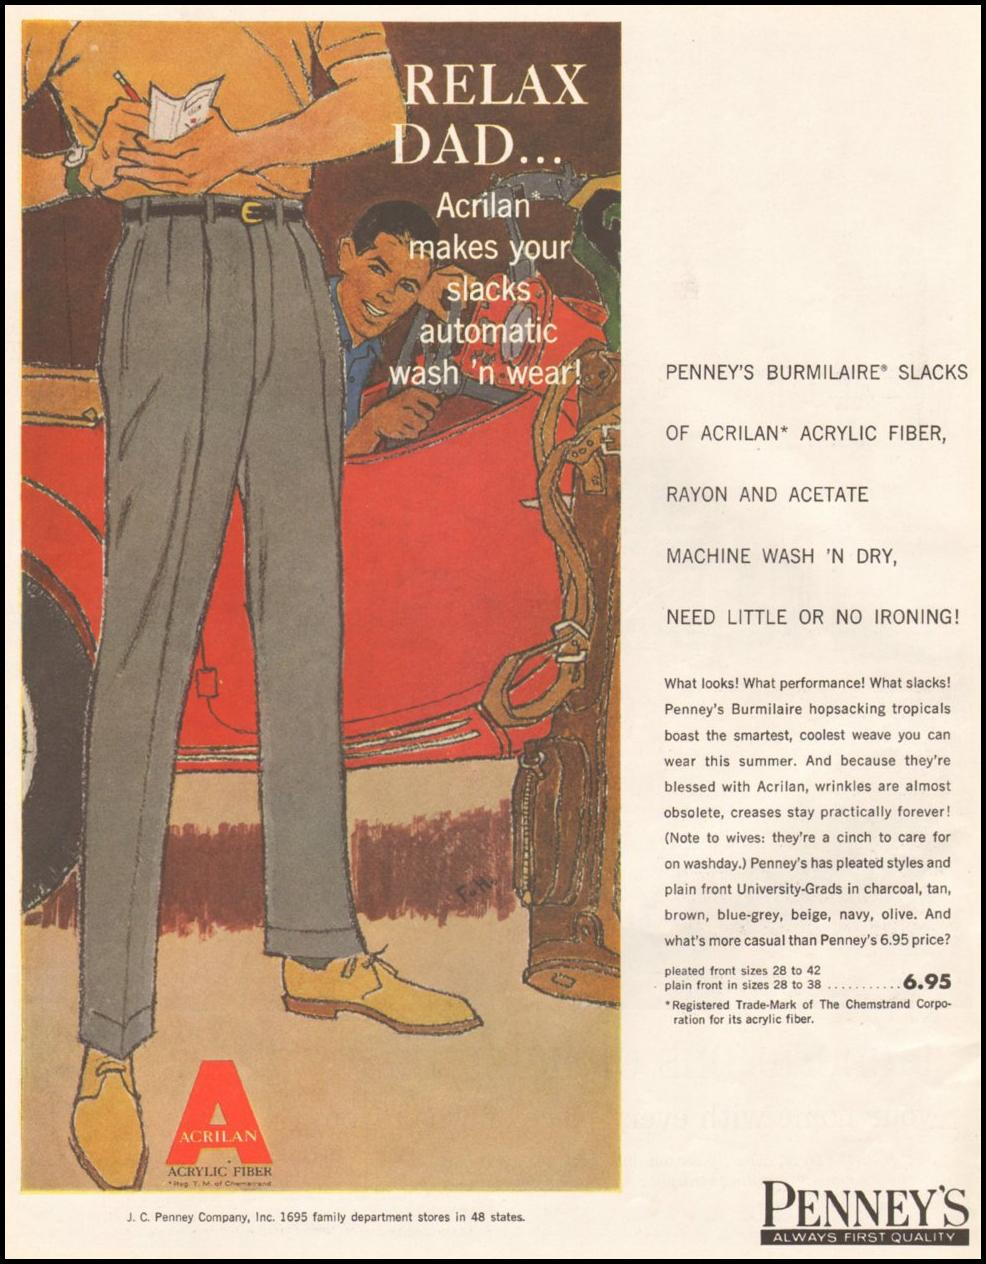 PENNEY'S BURMILAIRE SLACKS SATURDAY EVENING POST 06/11/1960